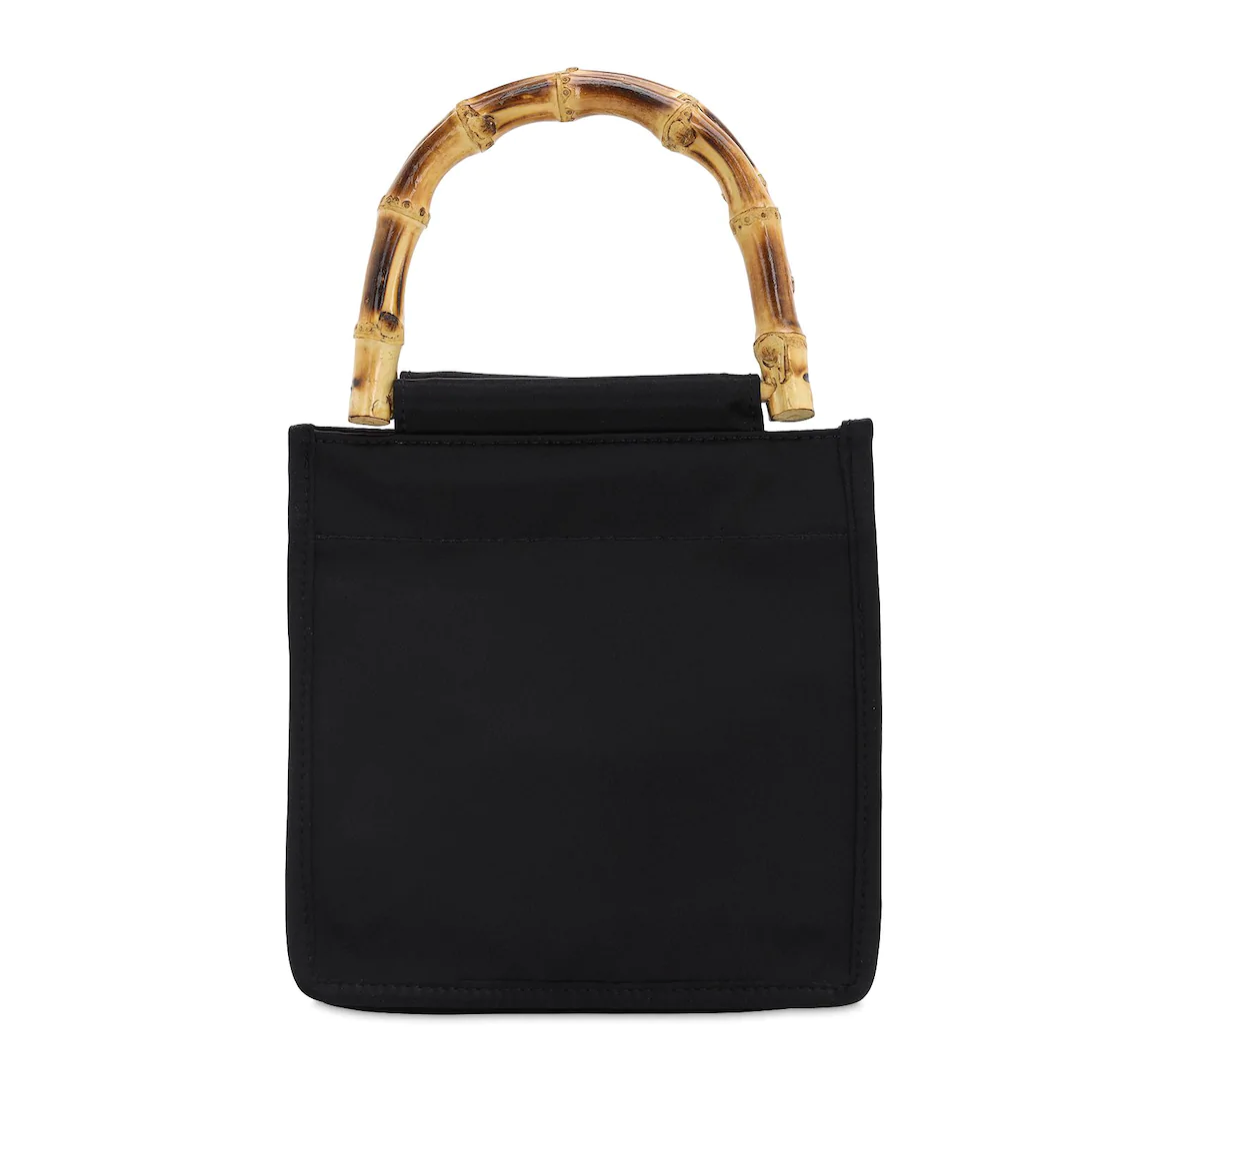 Satin Bamboo Handle Bag Black